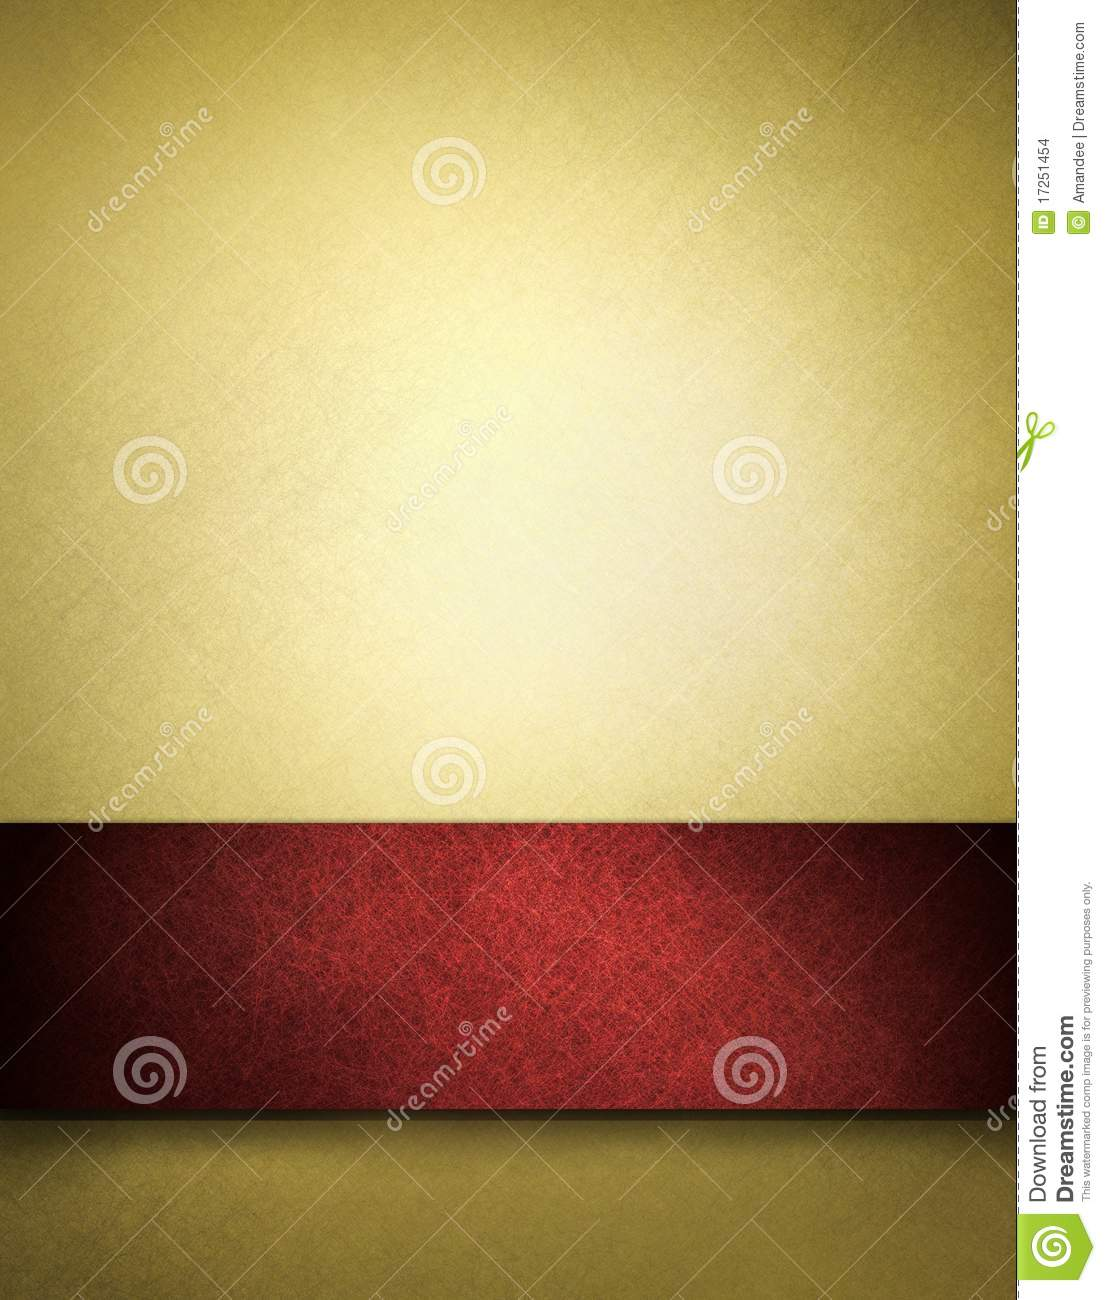 Gold background with red stripe for text or title